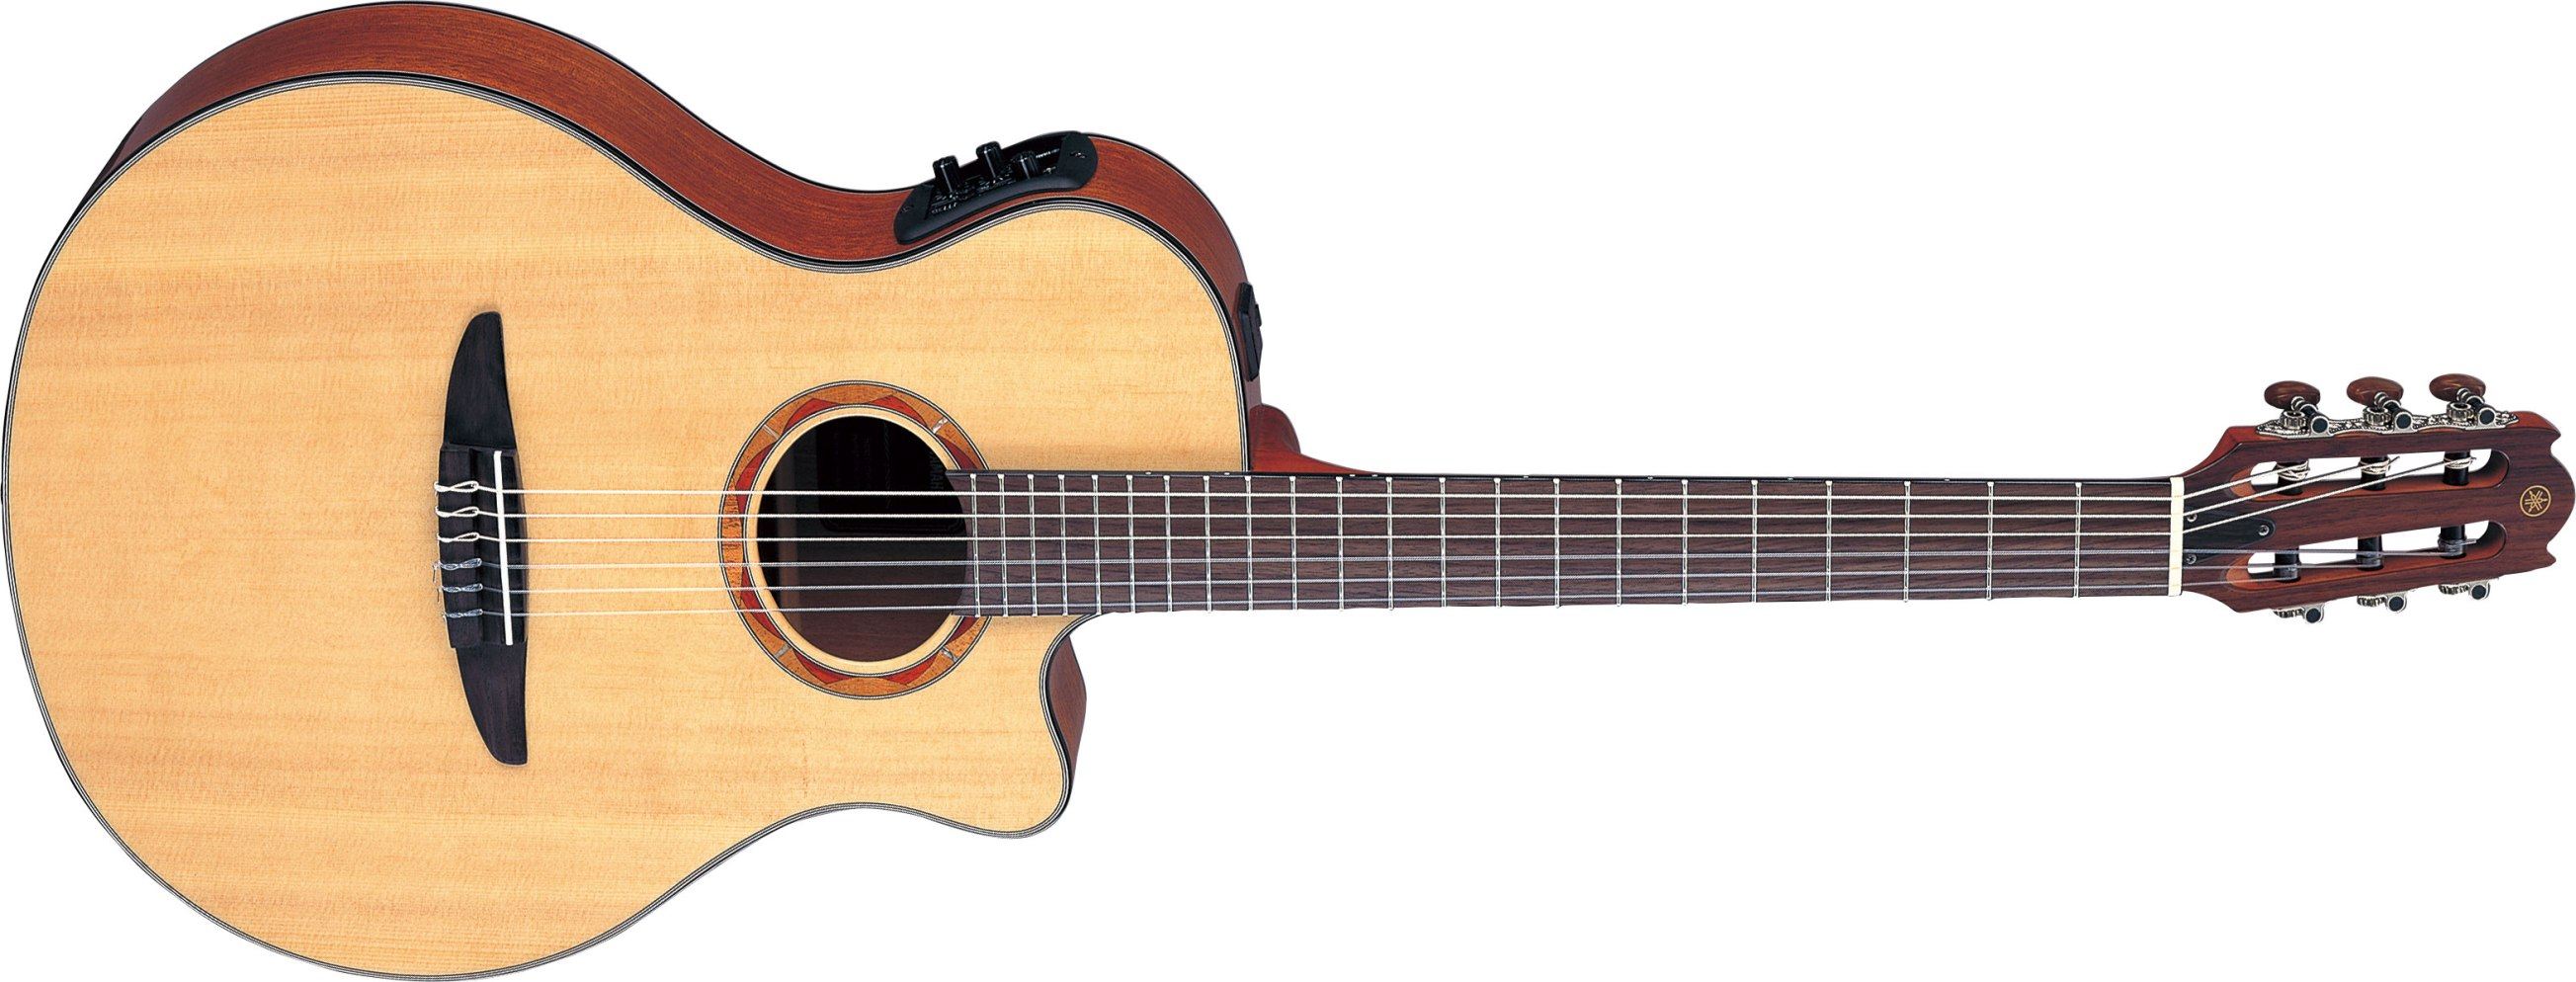 Yamaha Ntx Acoustic Electric Classical Guitar